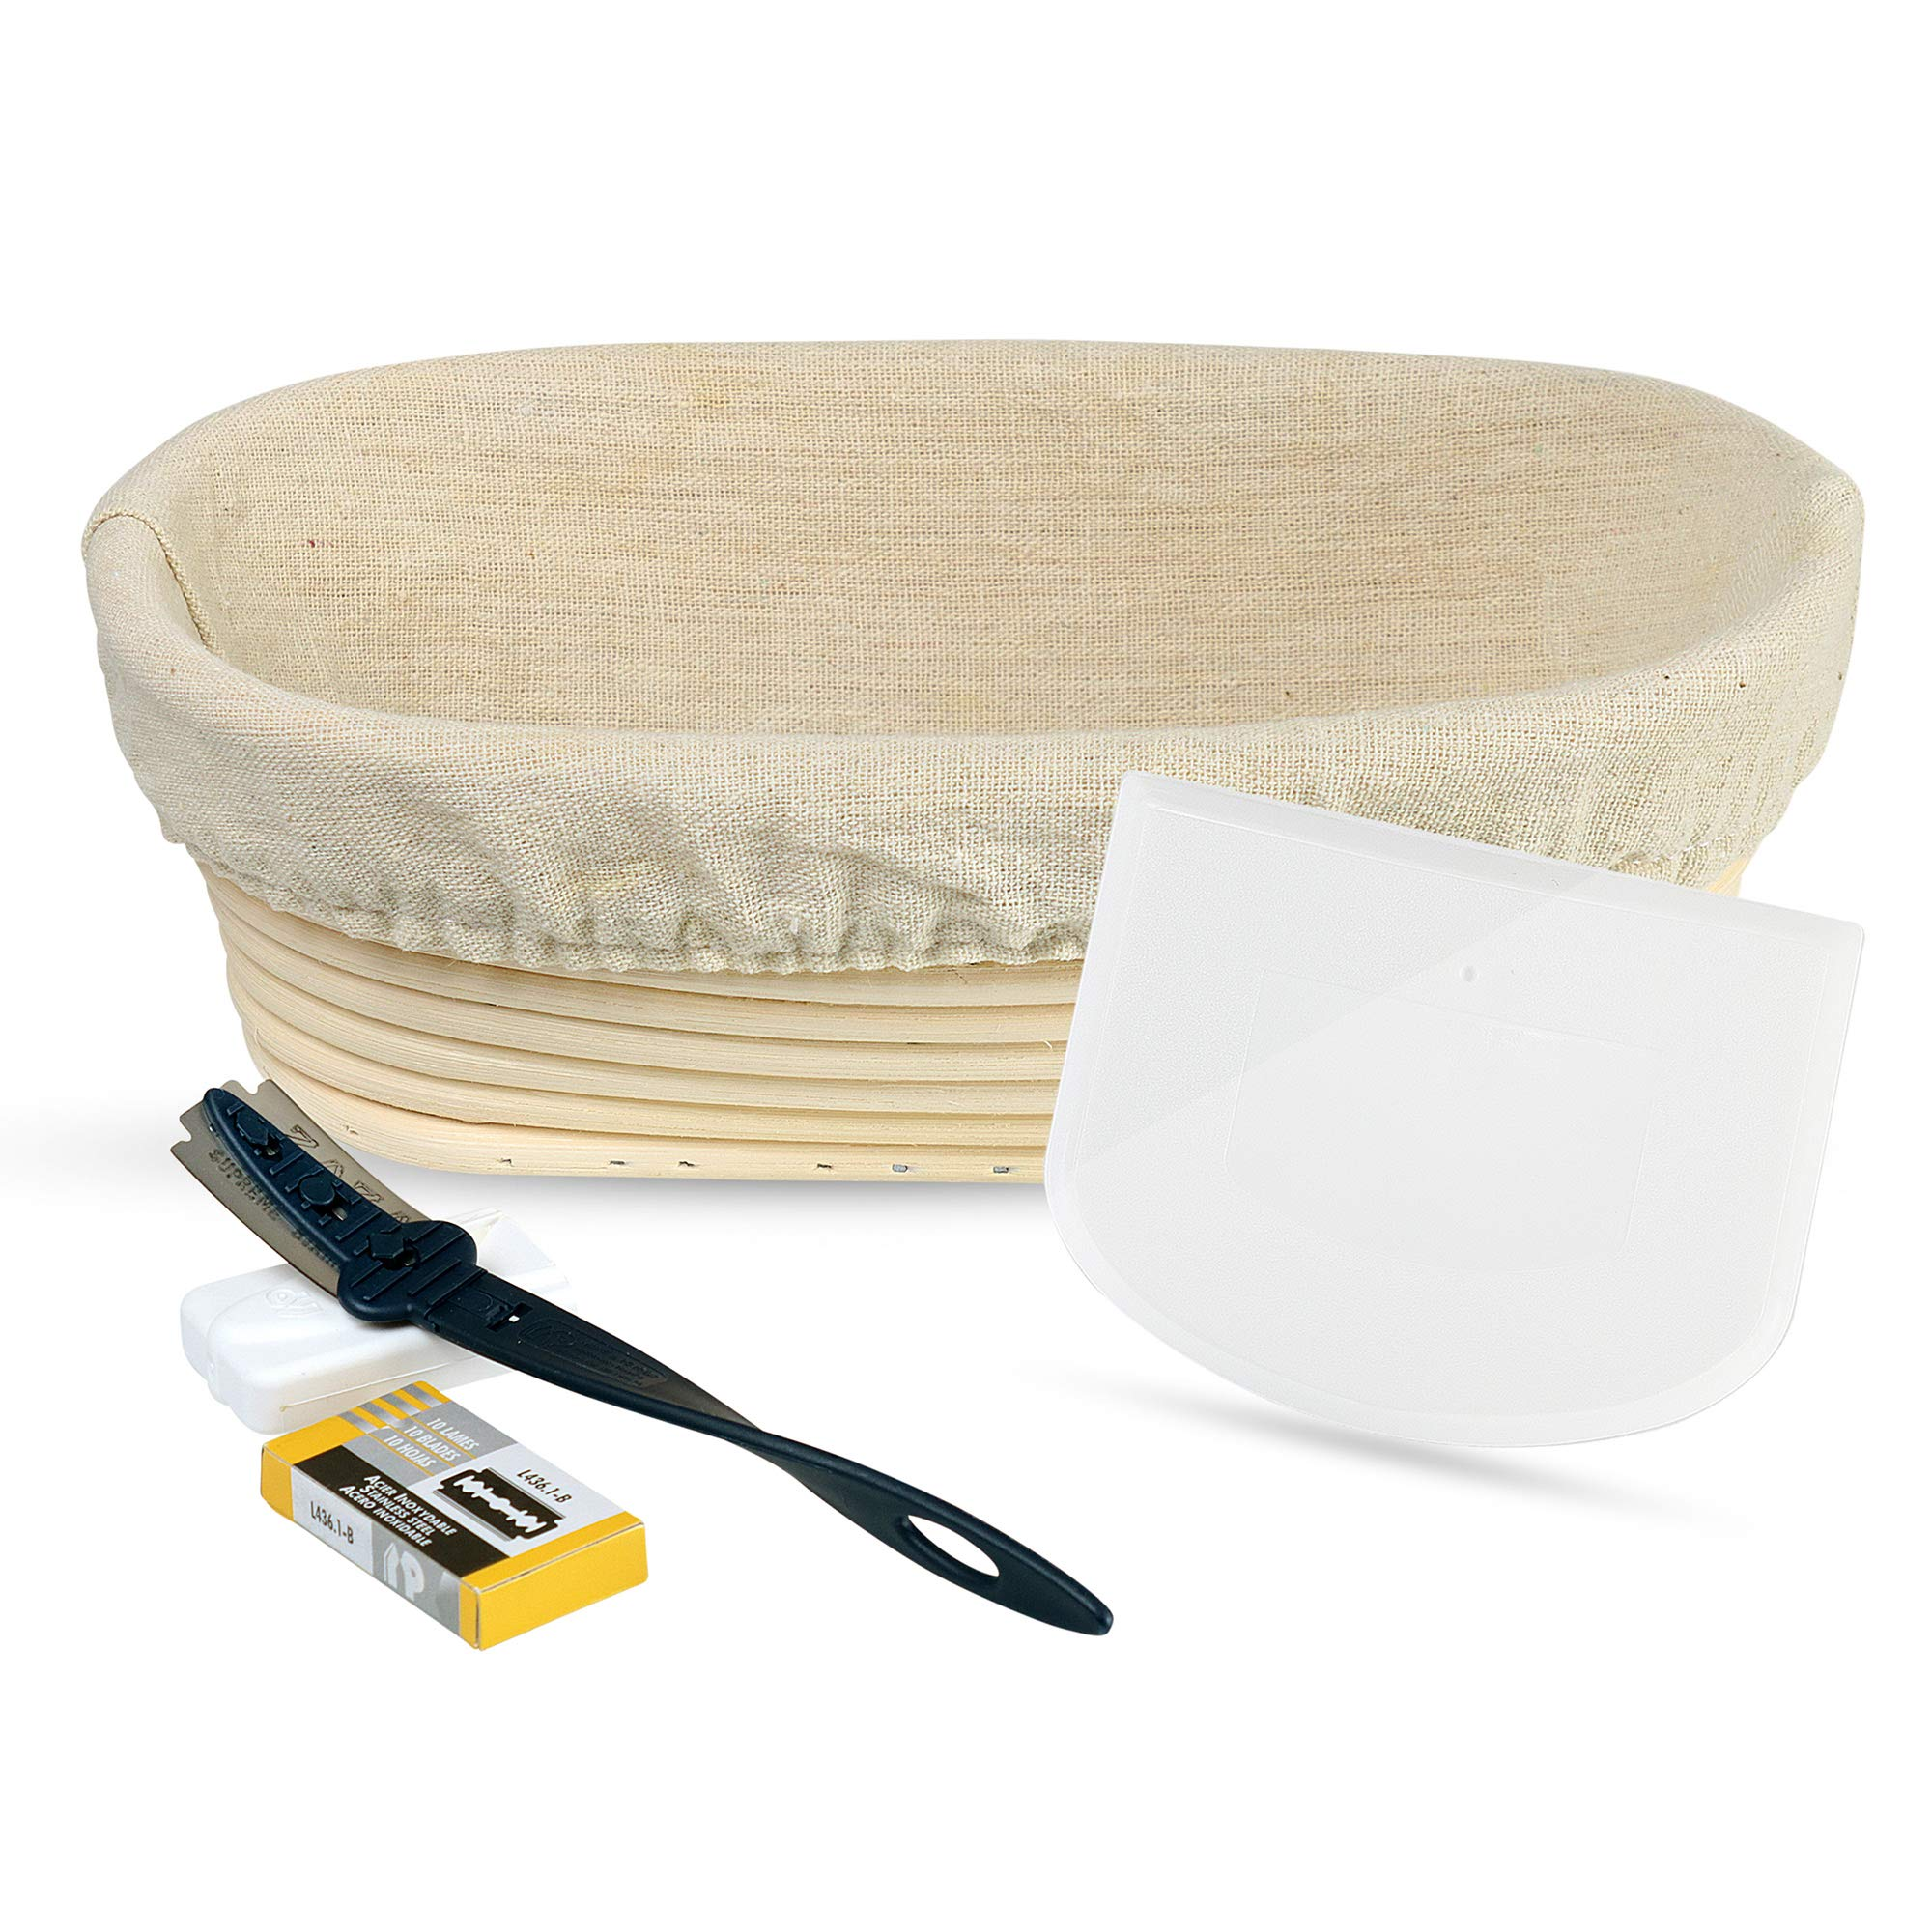 9 Inch Oval Banneton Bread Proofing Basket - 5-Piece Starter Set of Baking Tools with Natural Rattan Brotform, Cotton Liner, Bread Scoring Tool Lame, 10 Pk Blades, Flexible Food Grade Bowl Scraper by Bread Experience